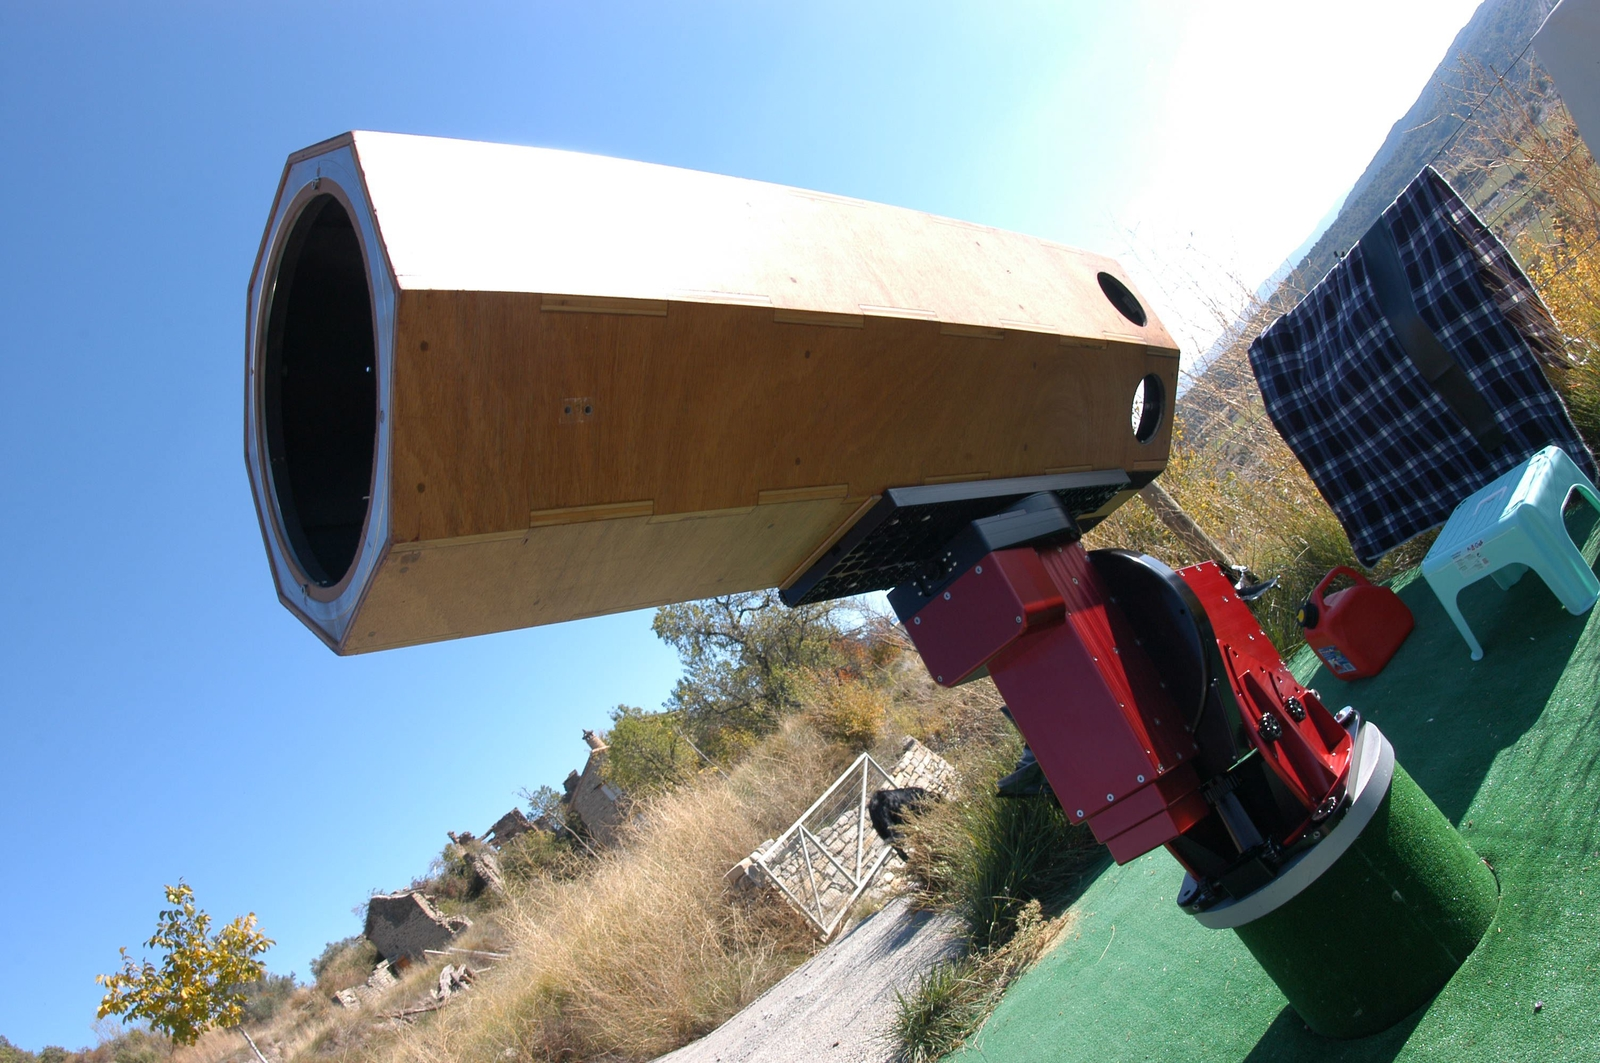 350 mm Astrograph